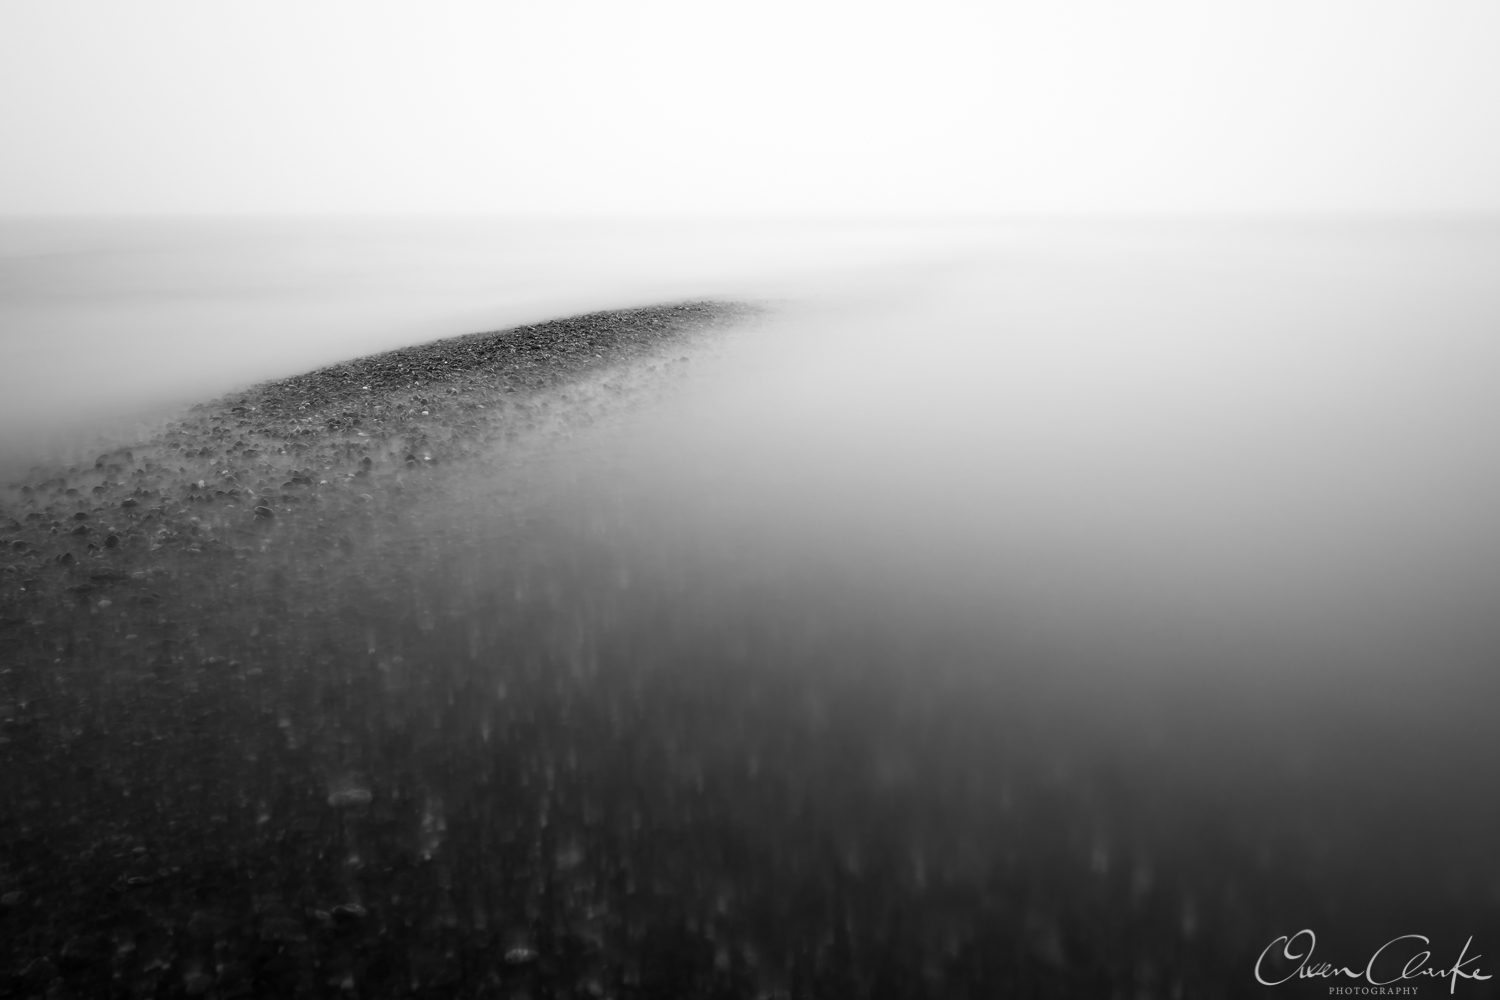 I watched as the tide slowly began to swallow up the shingle. It began to create a small island and what really caught my attention was how the tide was interacting with the shingle. A long exposure helped smooth out the ripples of the waves.